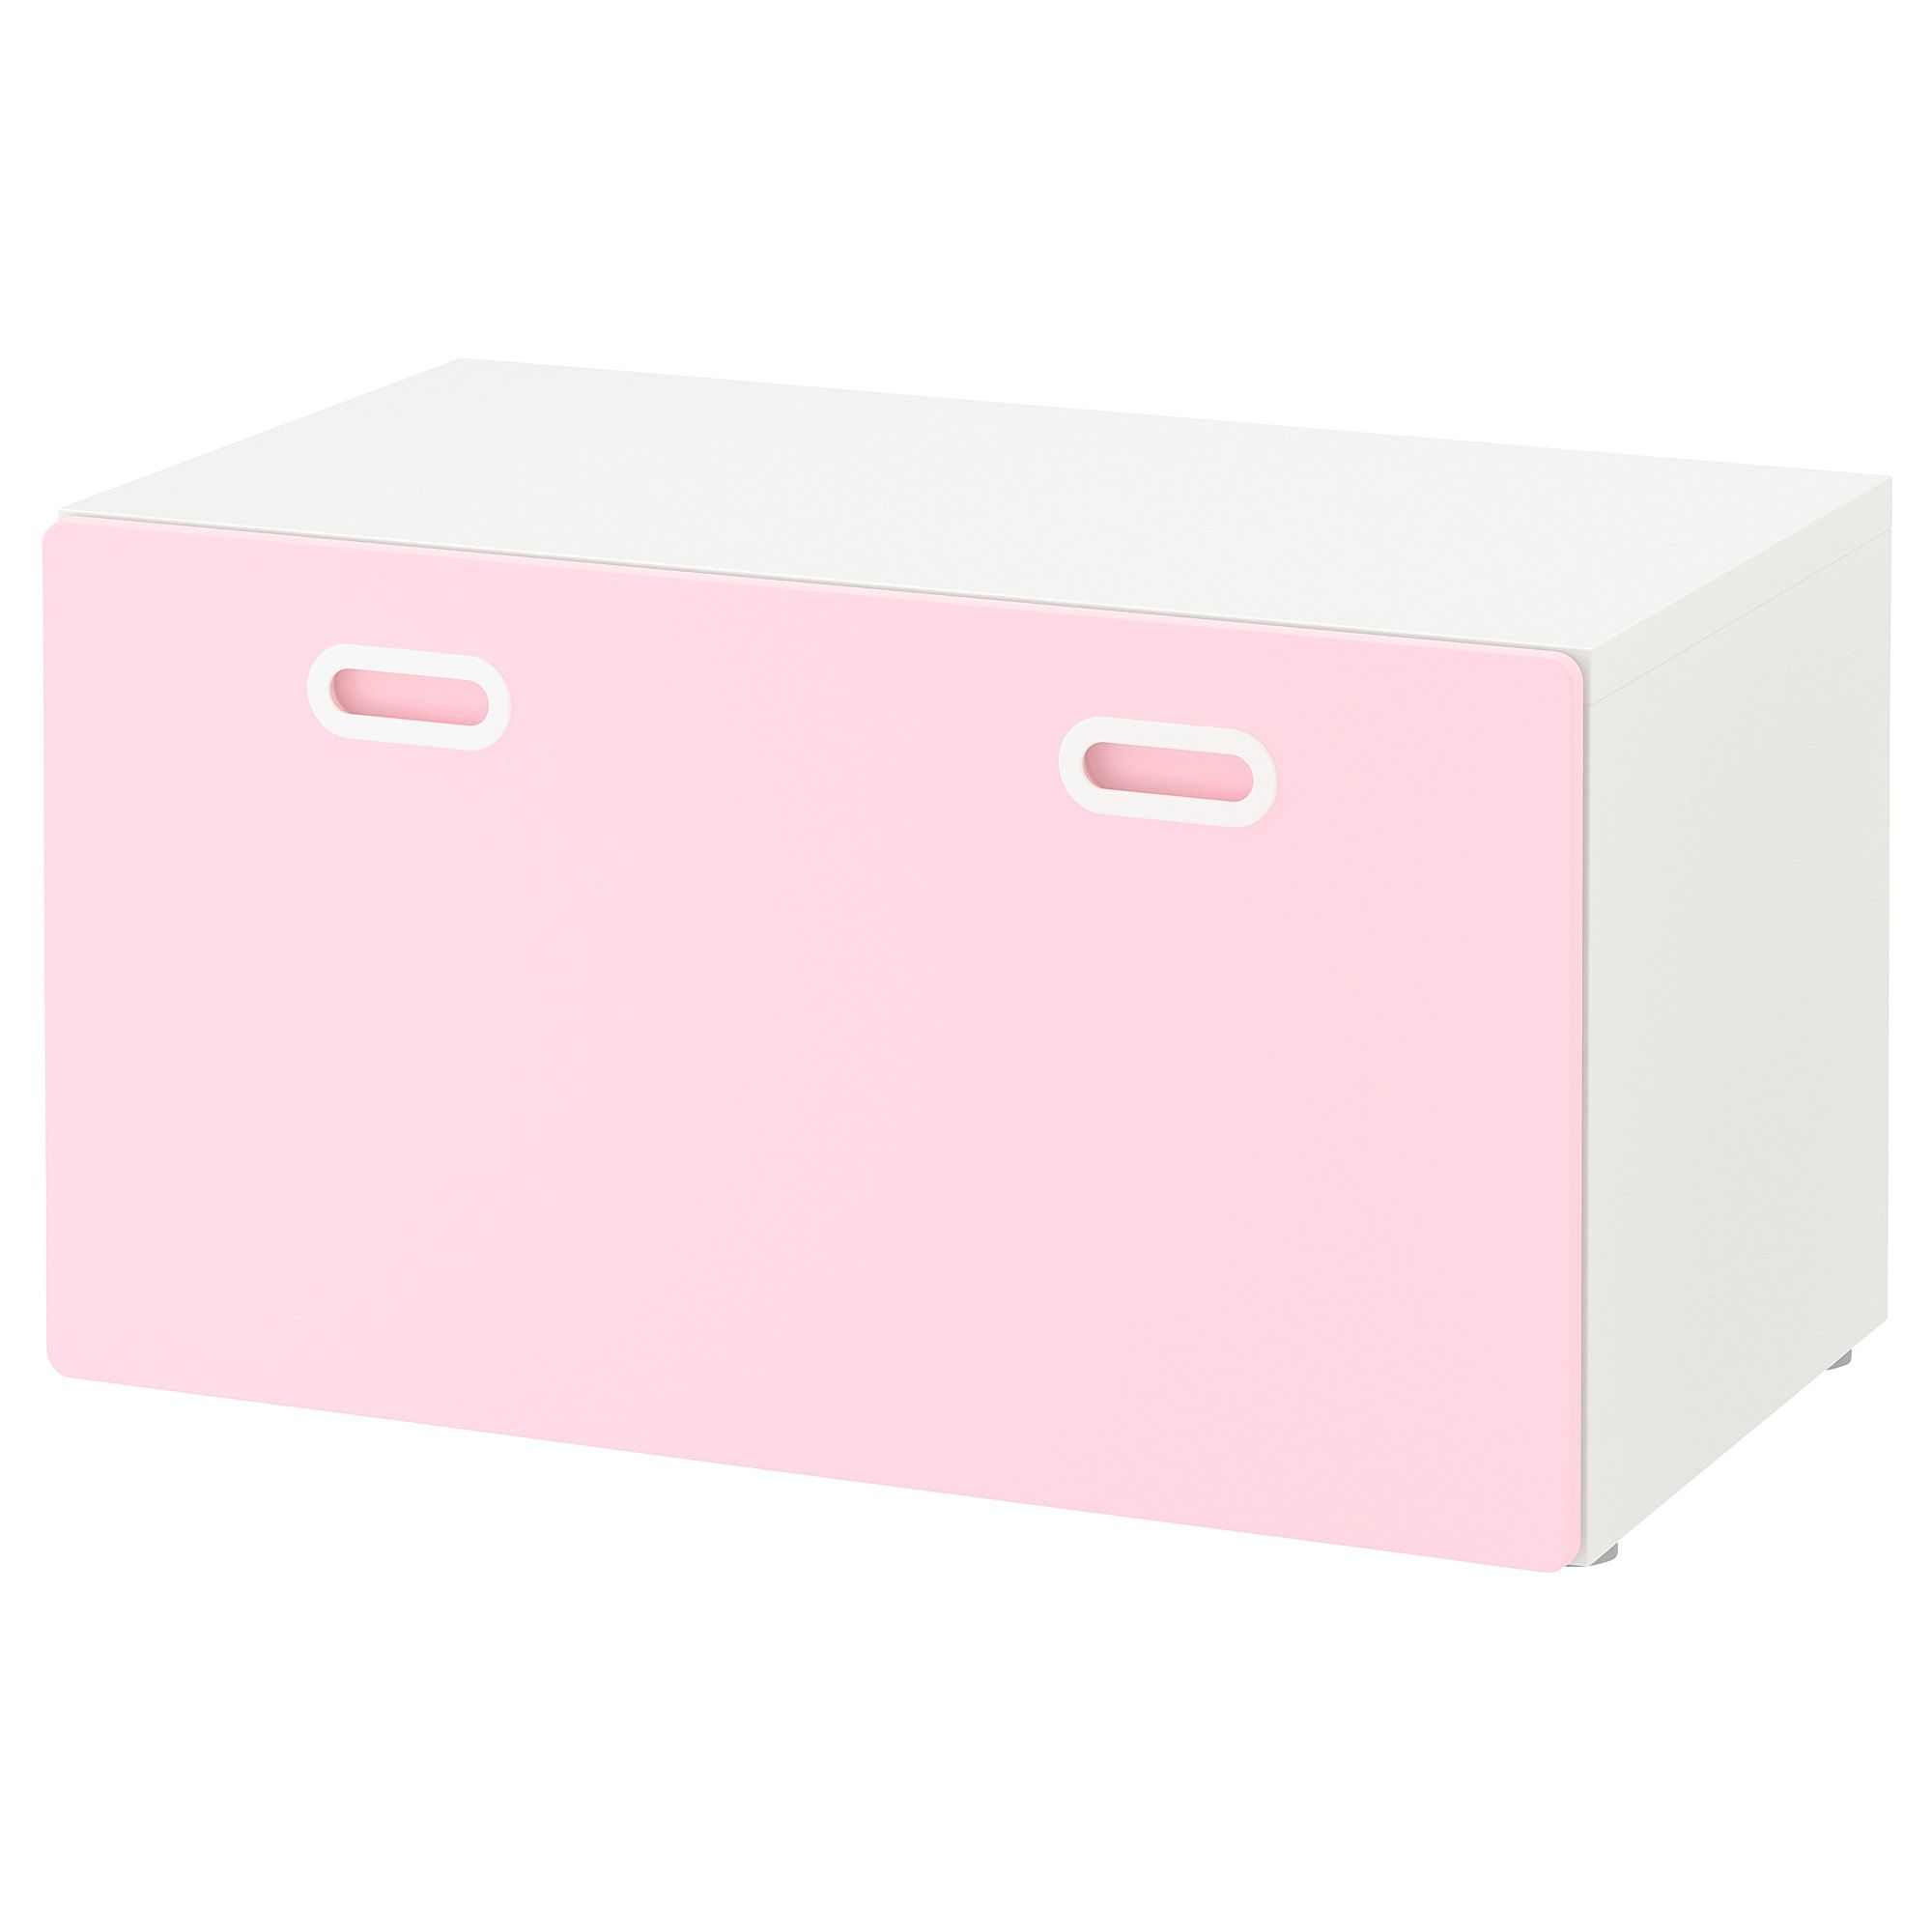 Stuva Fritids Bench With Toy Storage White Light Pink 35 3